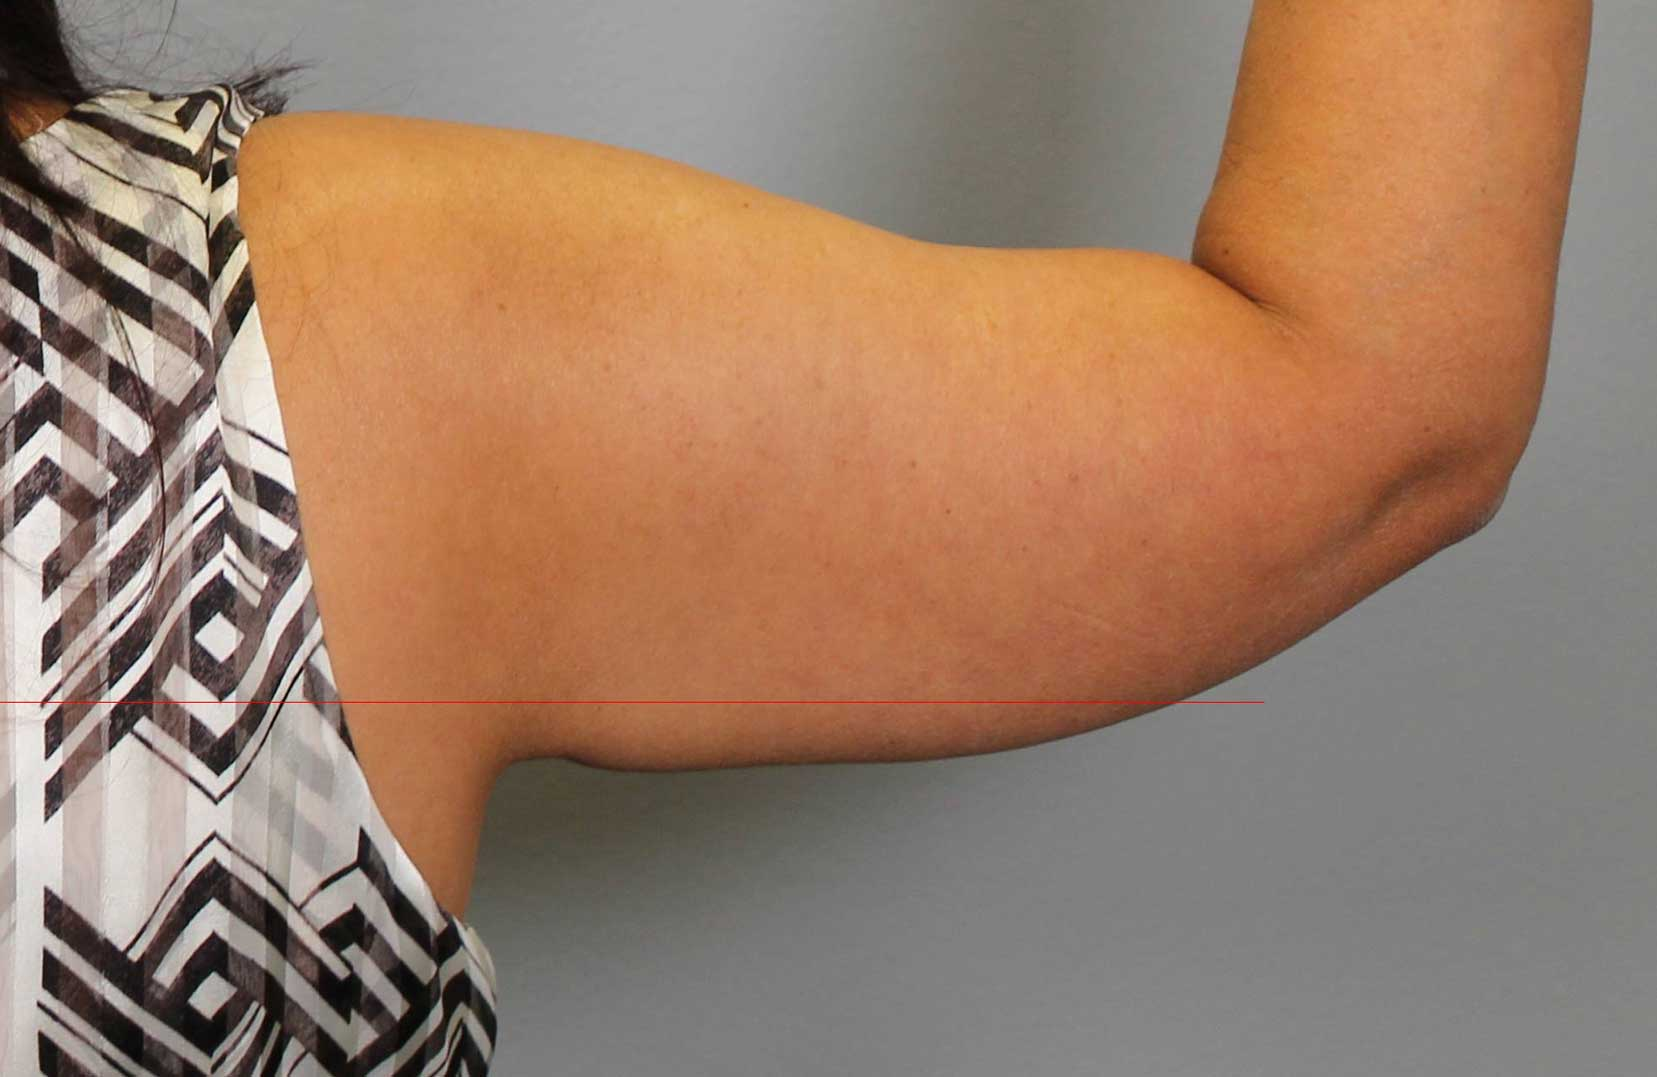 non-surgical-body-sculpting-arm-lift-1-after